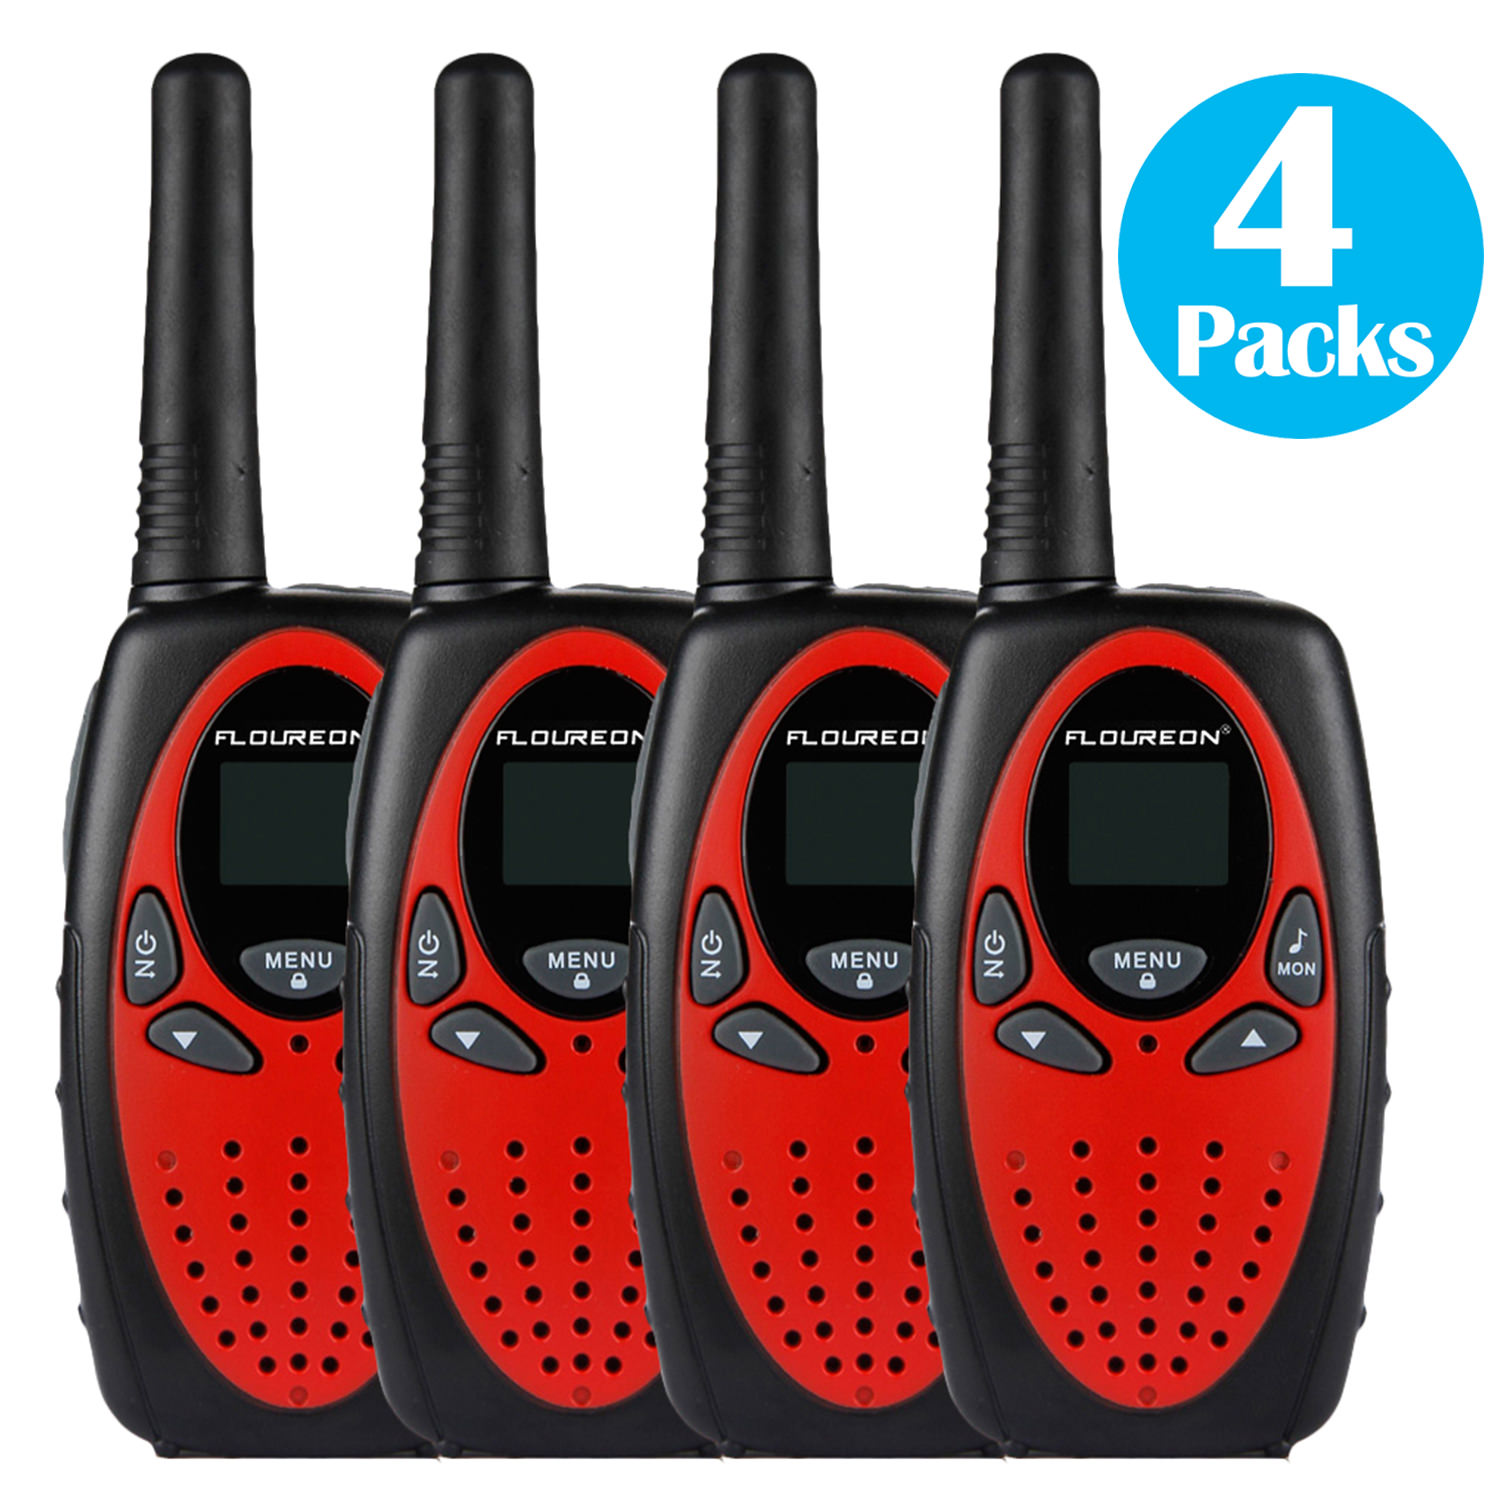 FLOUREON 4 Packs Walkie Talkies Two Way Radios 22 Channel 3000M (MAX 5000M open field) UHF Outdoor Long Range Handheld Talkies Talky for NERF Kids Adults(Red)